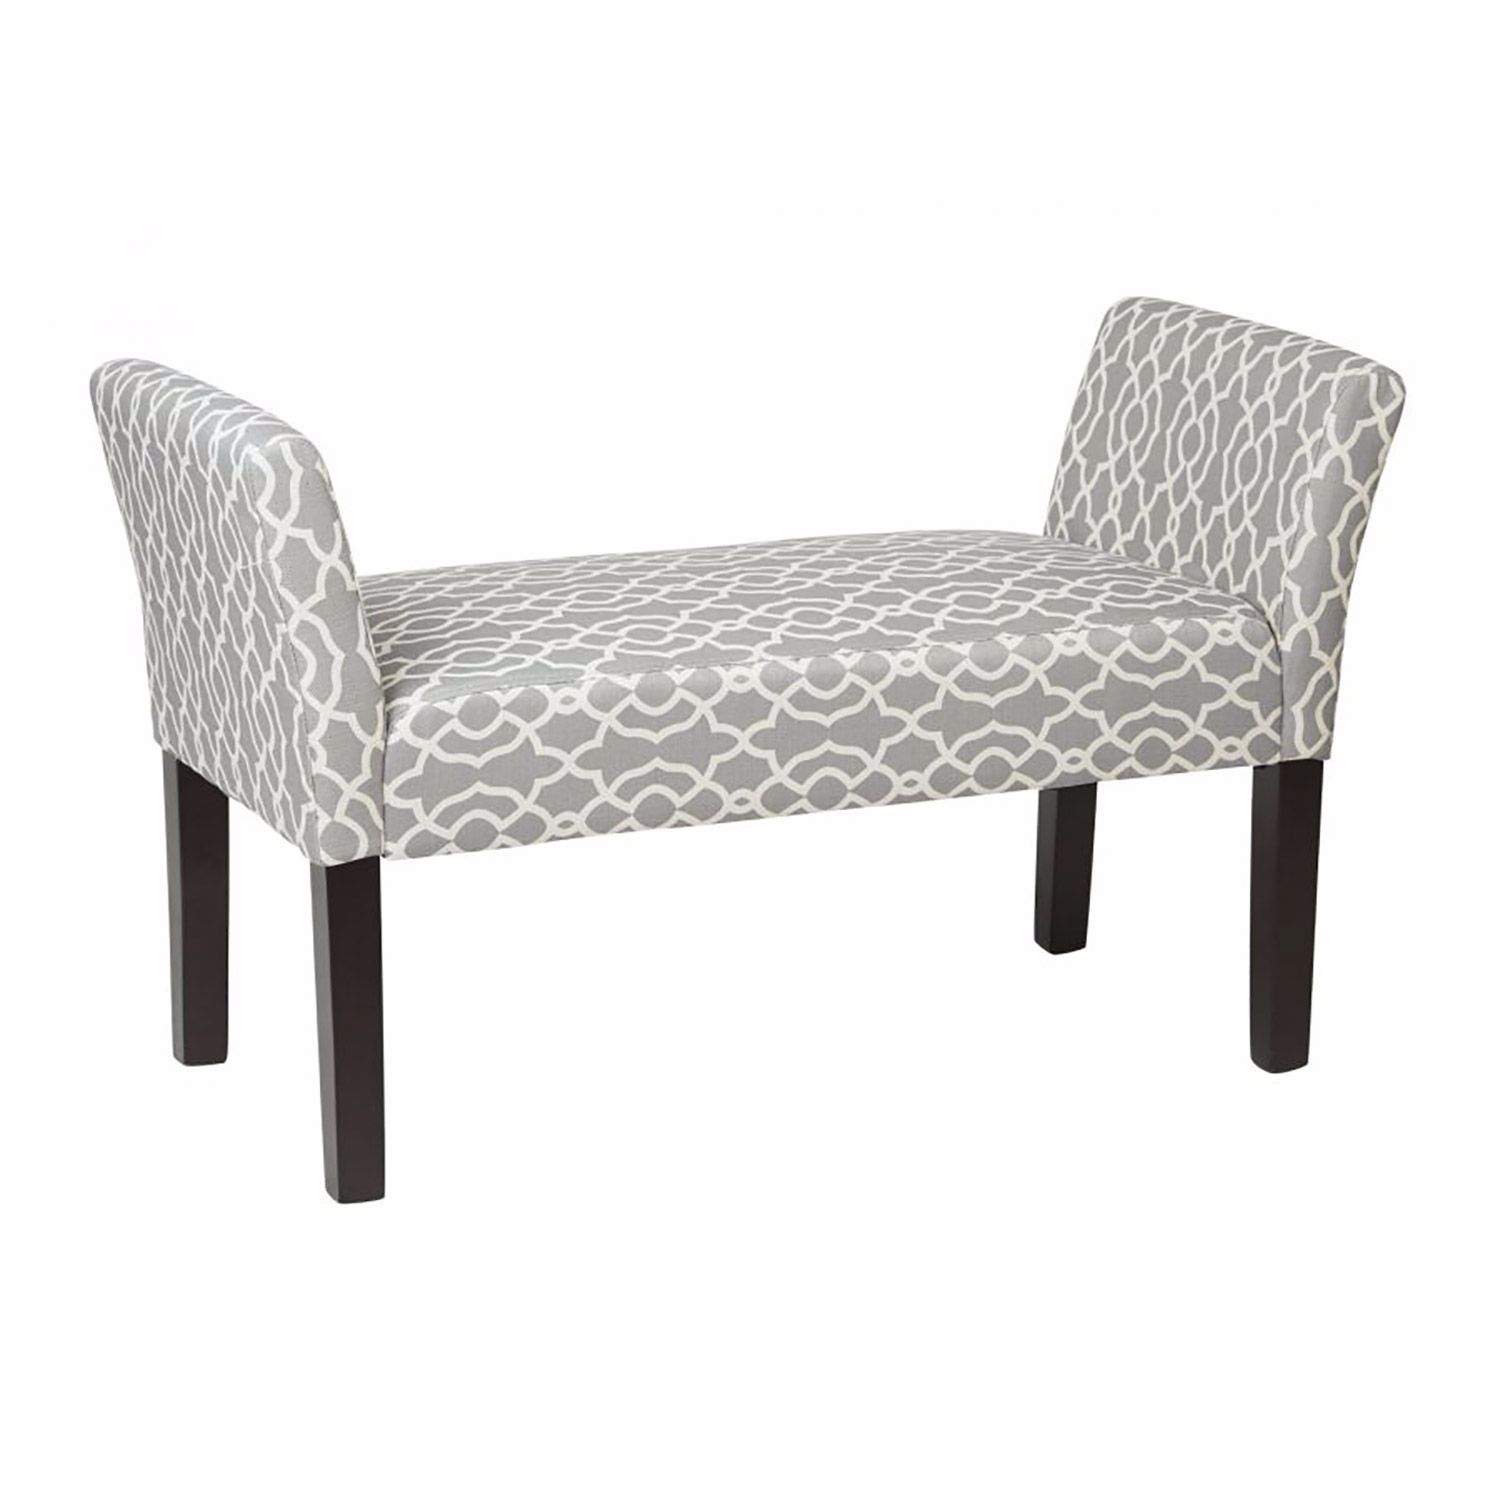 Cool Kelsey Grey Fabric Bench D Kls20 G16 Osp Office Star Gmtry Best Dining Table And Chair Ideas Images Gmtryco